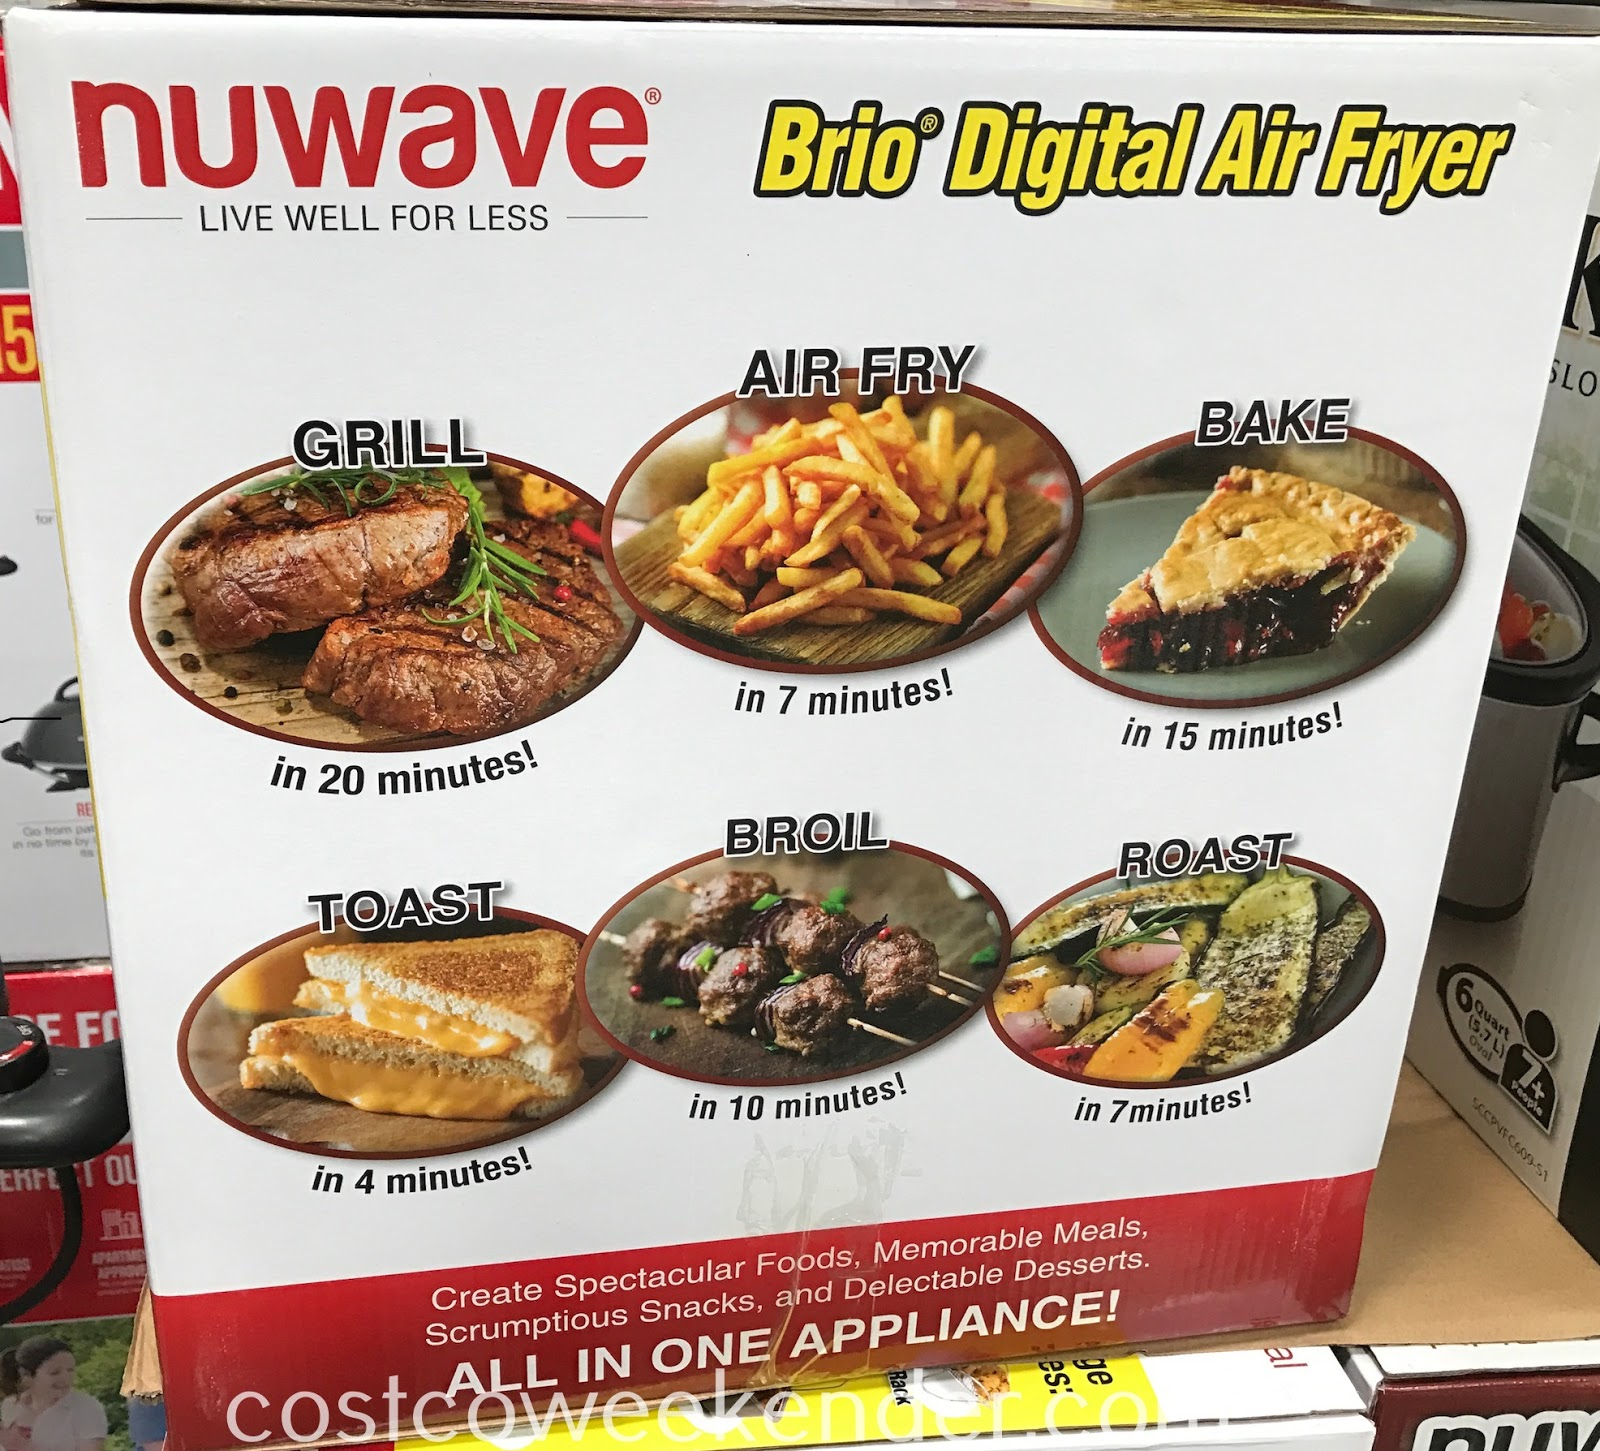 Nuwave Brio Digital Air Fryer: grill, air fry, bake, toast, broil, roast